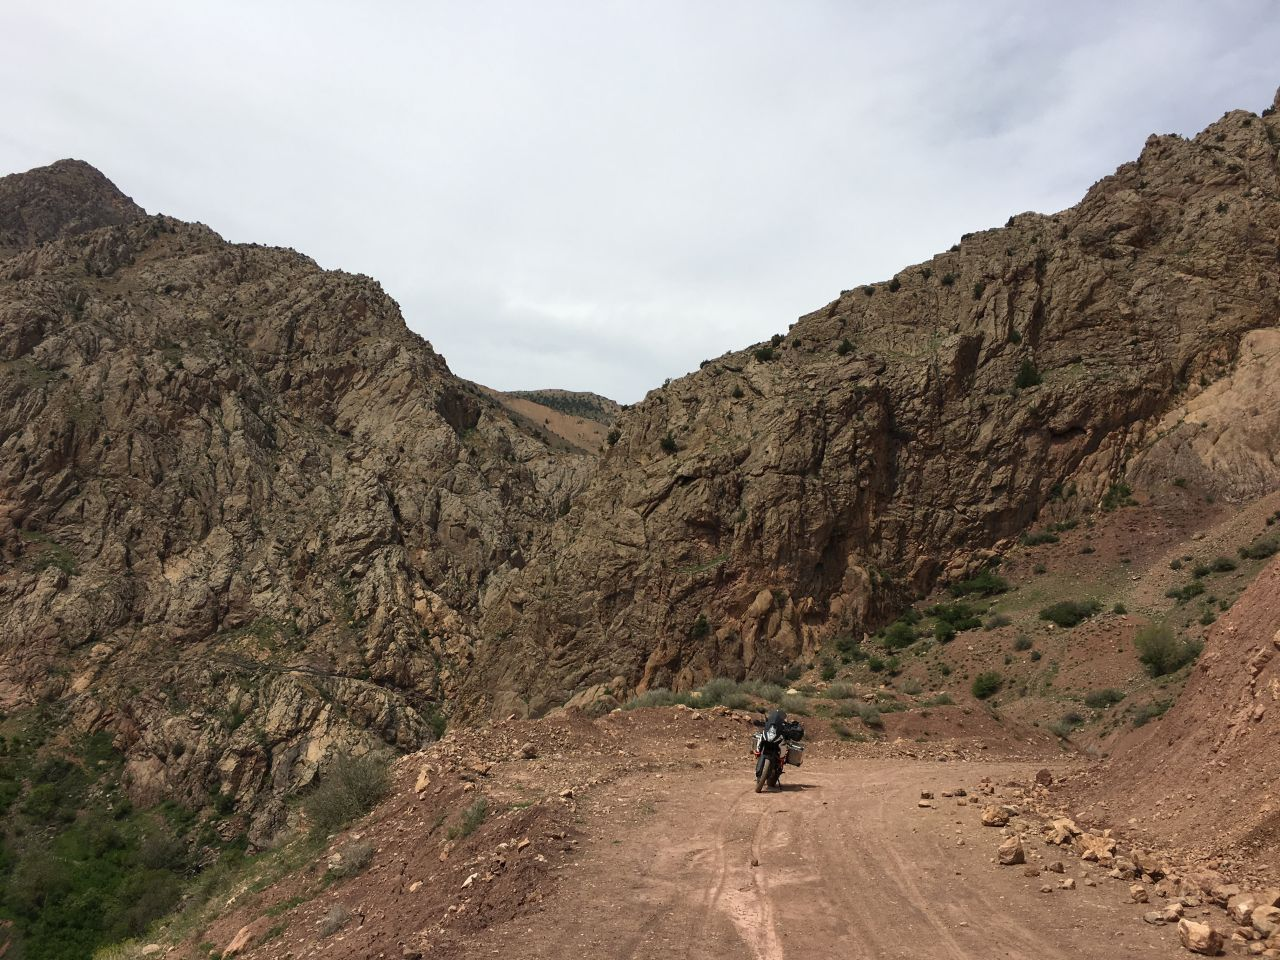 First KTM 1090 Adventure R in the Alamut Valley.